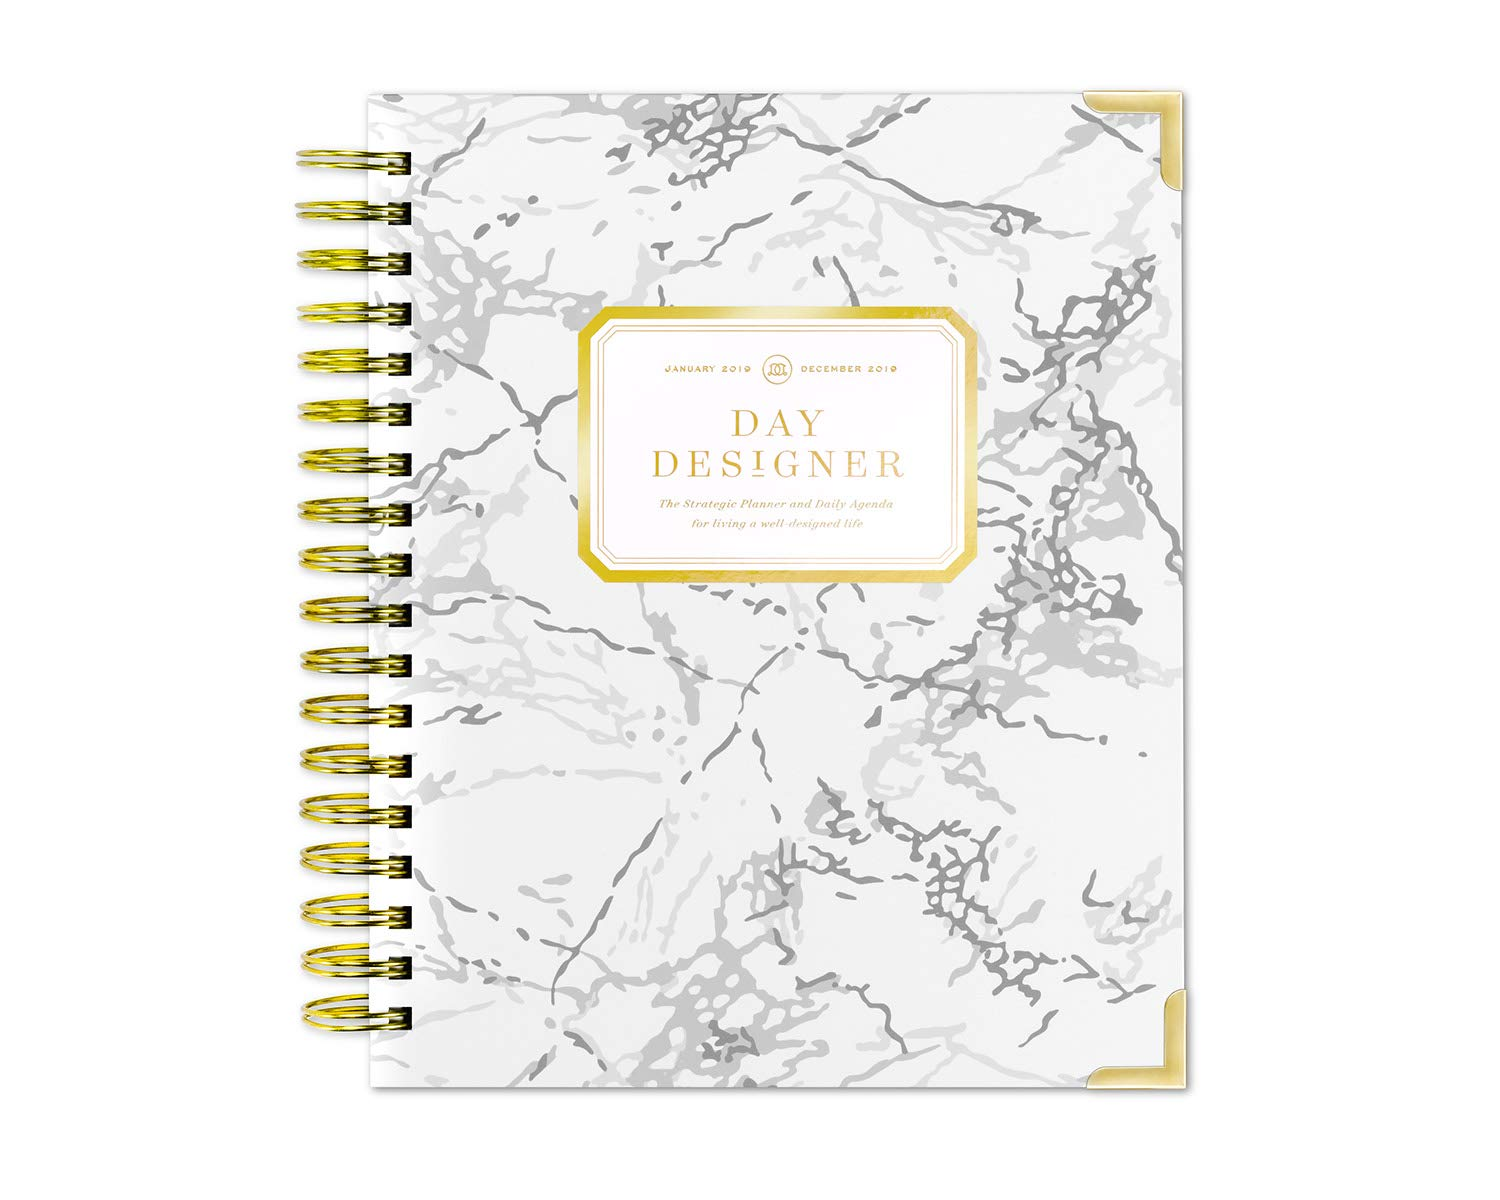 Day Designer 2019 Daily Life Planner and Agenda, Hardcover, Twin-Wire Binding, 9